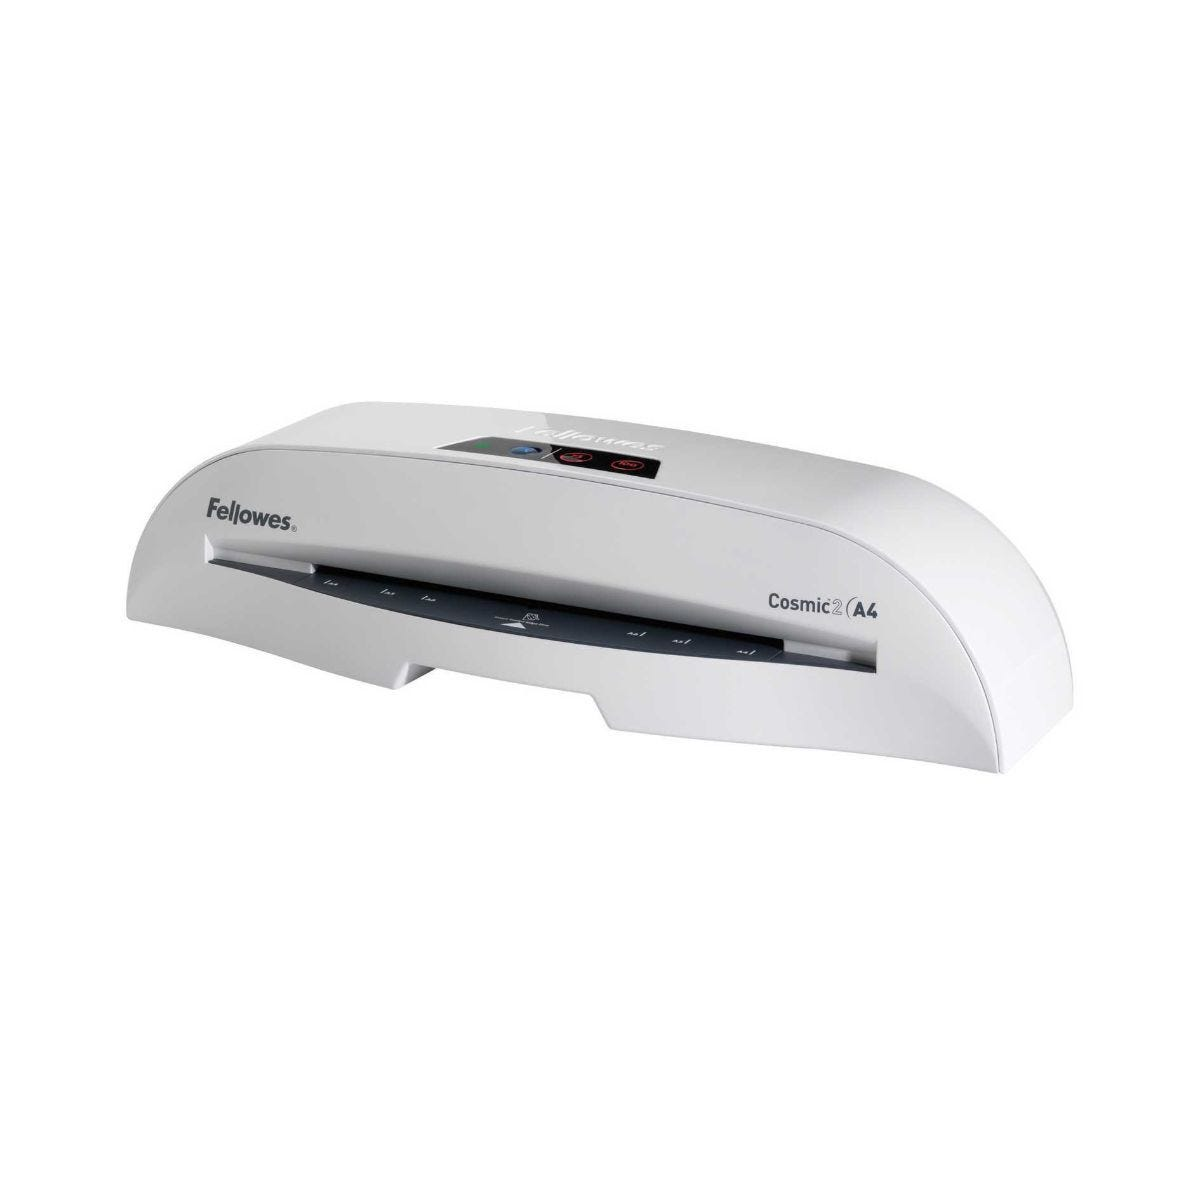 Fellowes Cosmic 2 A4 Home Office Laminator with 100% Jam Free  Mechanism